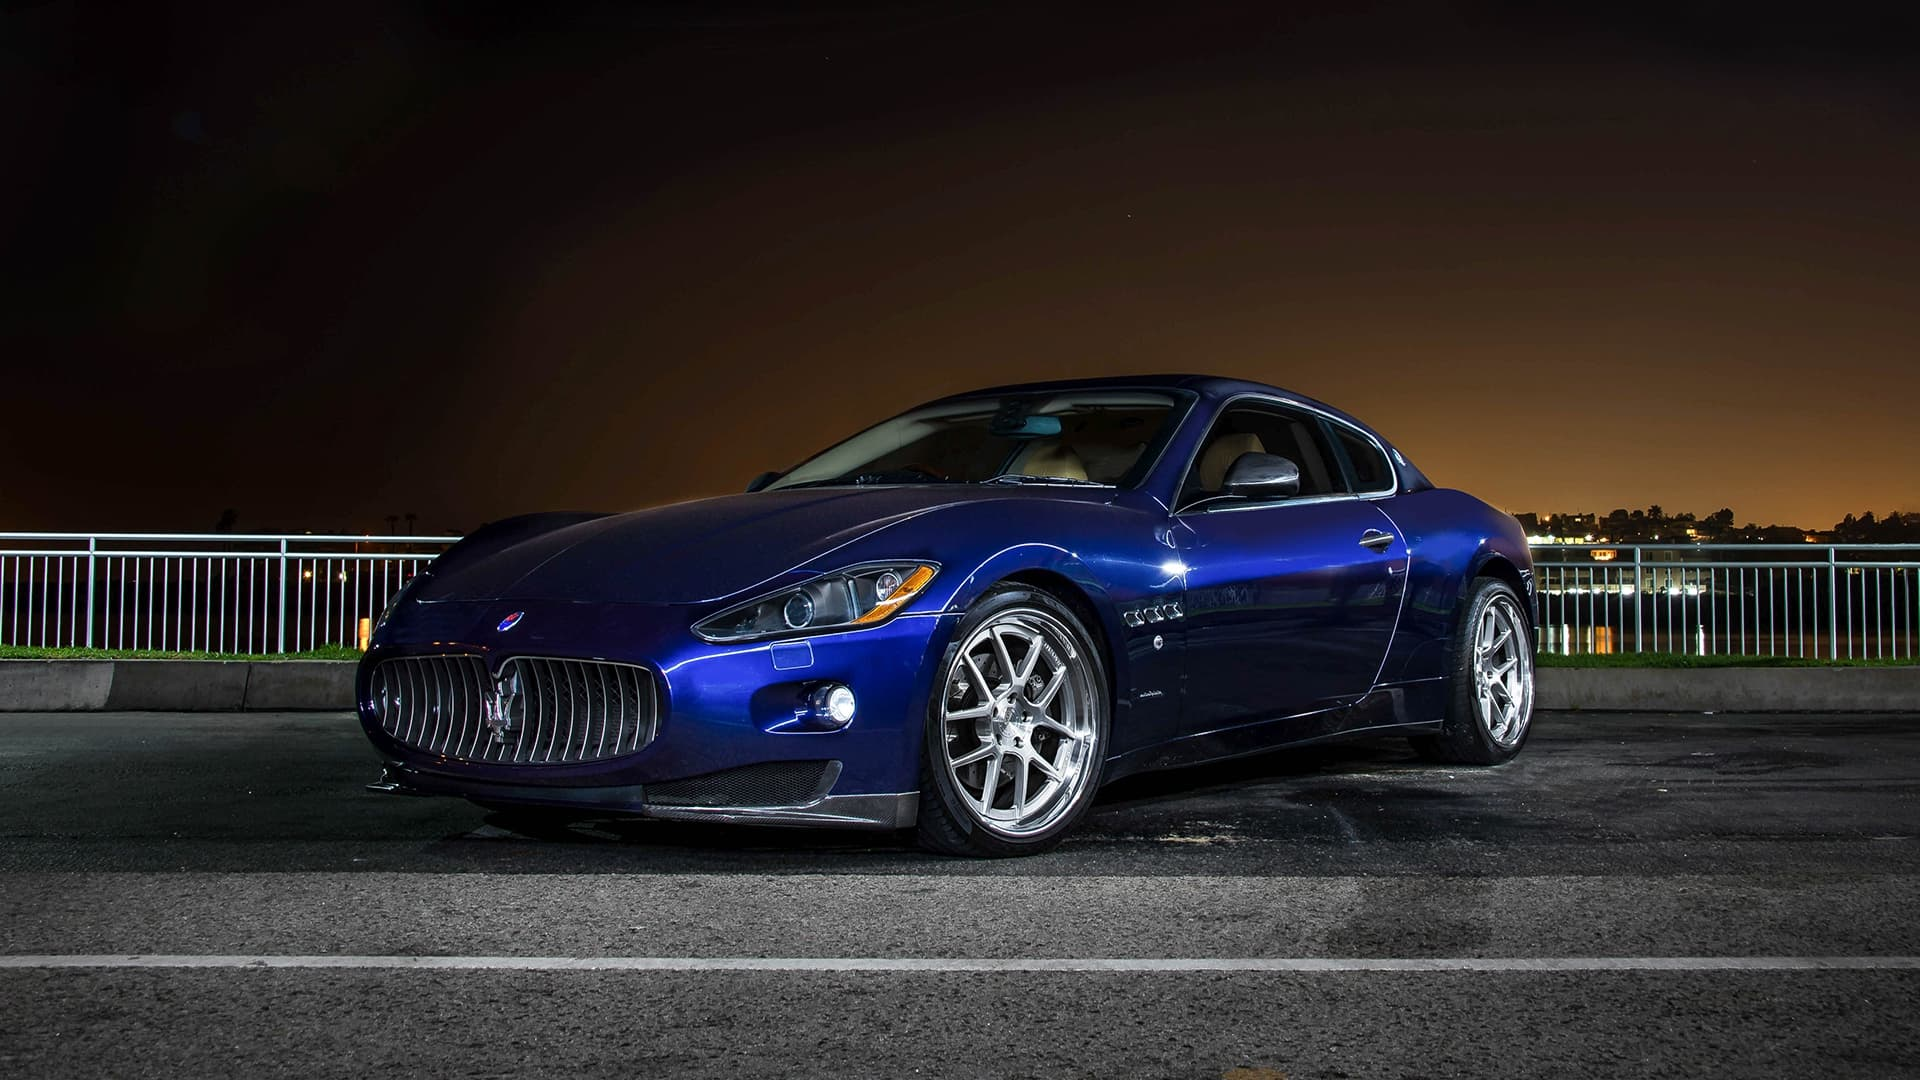 Maserati Granturismo blue night screensaver